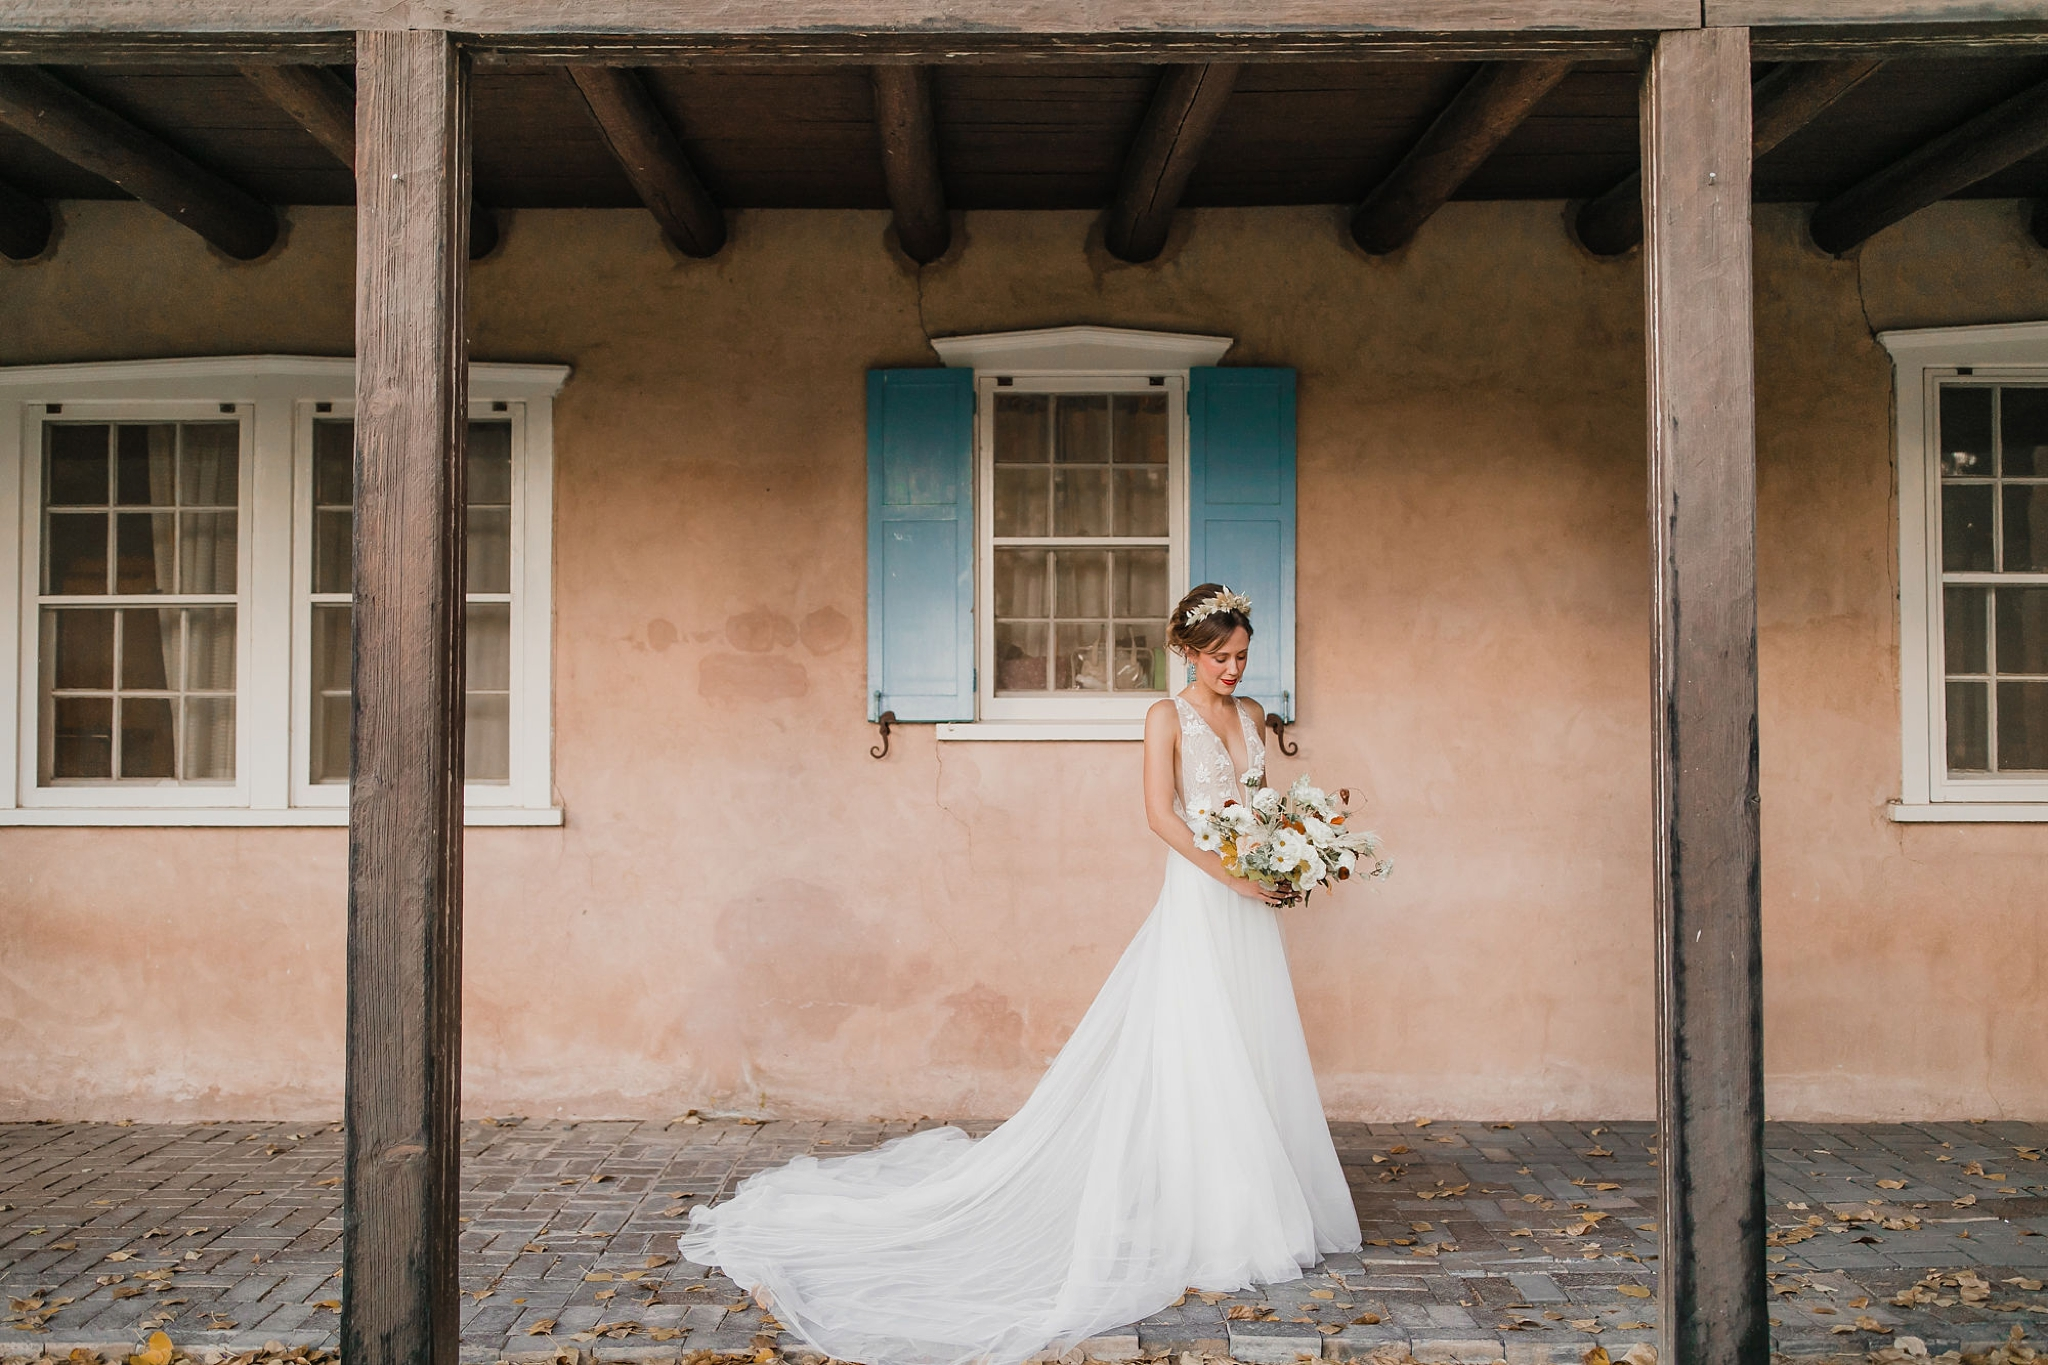 Alicia+lucia+photography+-+albuquerque+wedding+photographer+-+santa+fe+wedding+photography+-+new+mexico+wedding+photographer+-+new+mexico+wedding+-+wedding+gowns+-+bridal+gowns+-+a+line+wedding+gown_0001.jpg